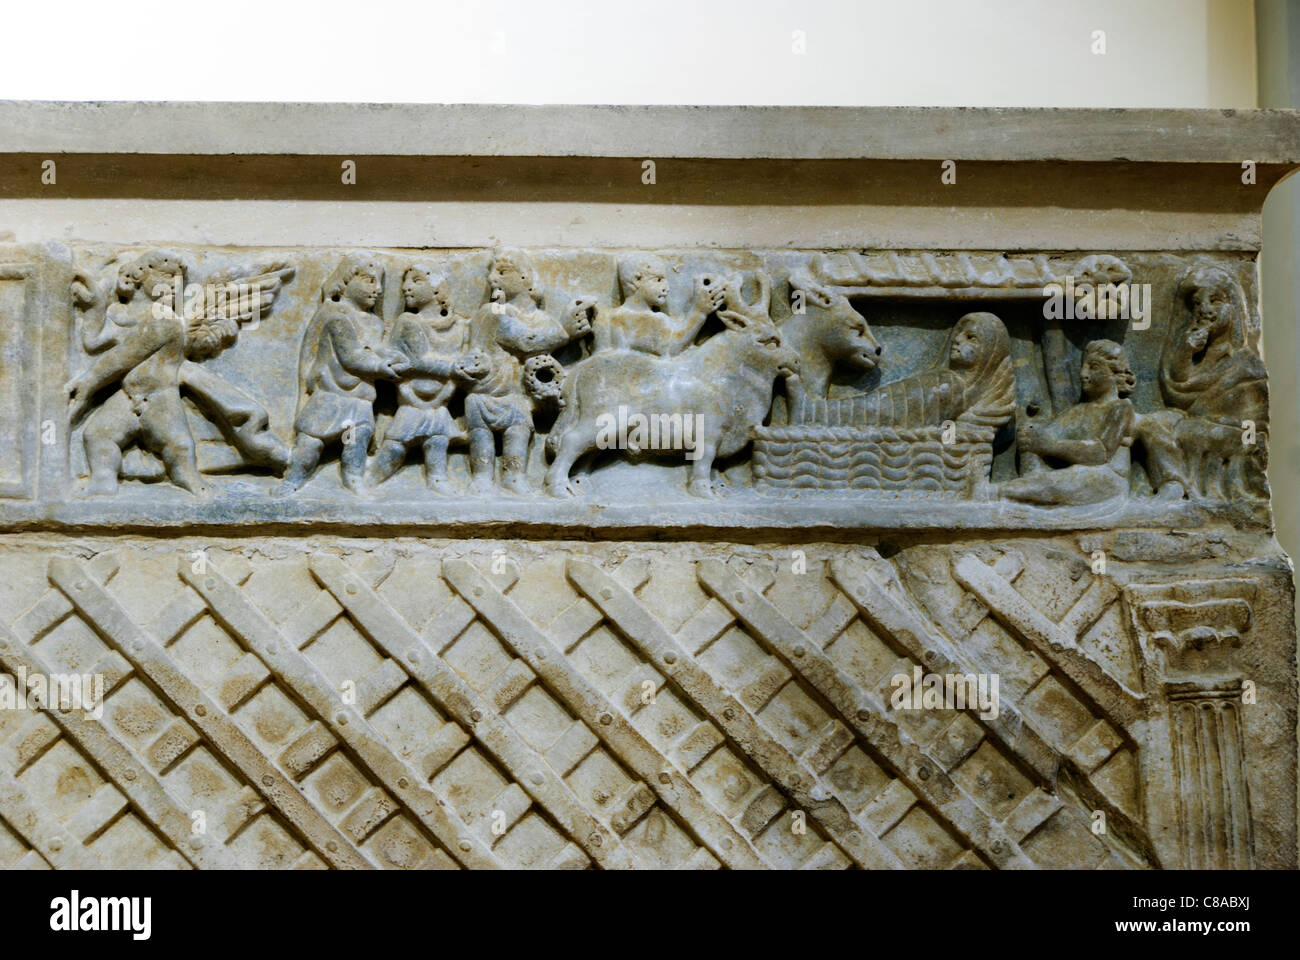 deatil of the Paleo-christian sarcophagus (350 a.d.) in the church of San Pietro Ispano - Boville Ernica, Frosinone, Stock Photo